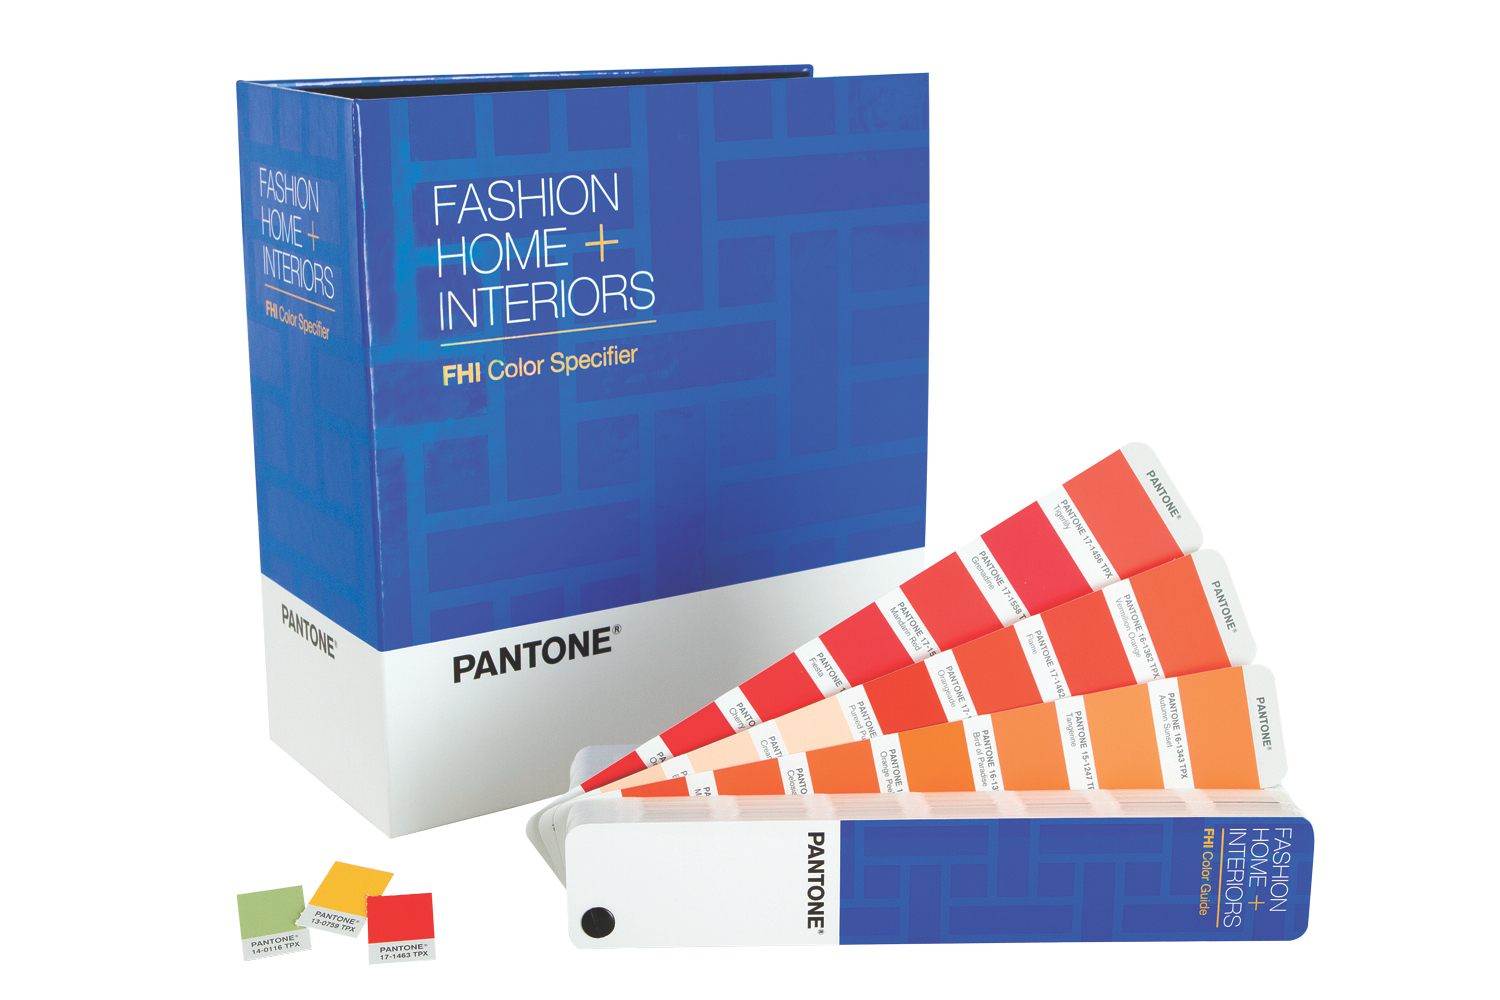 Pantone F+h Fpp200 Specifier + Guide